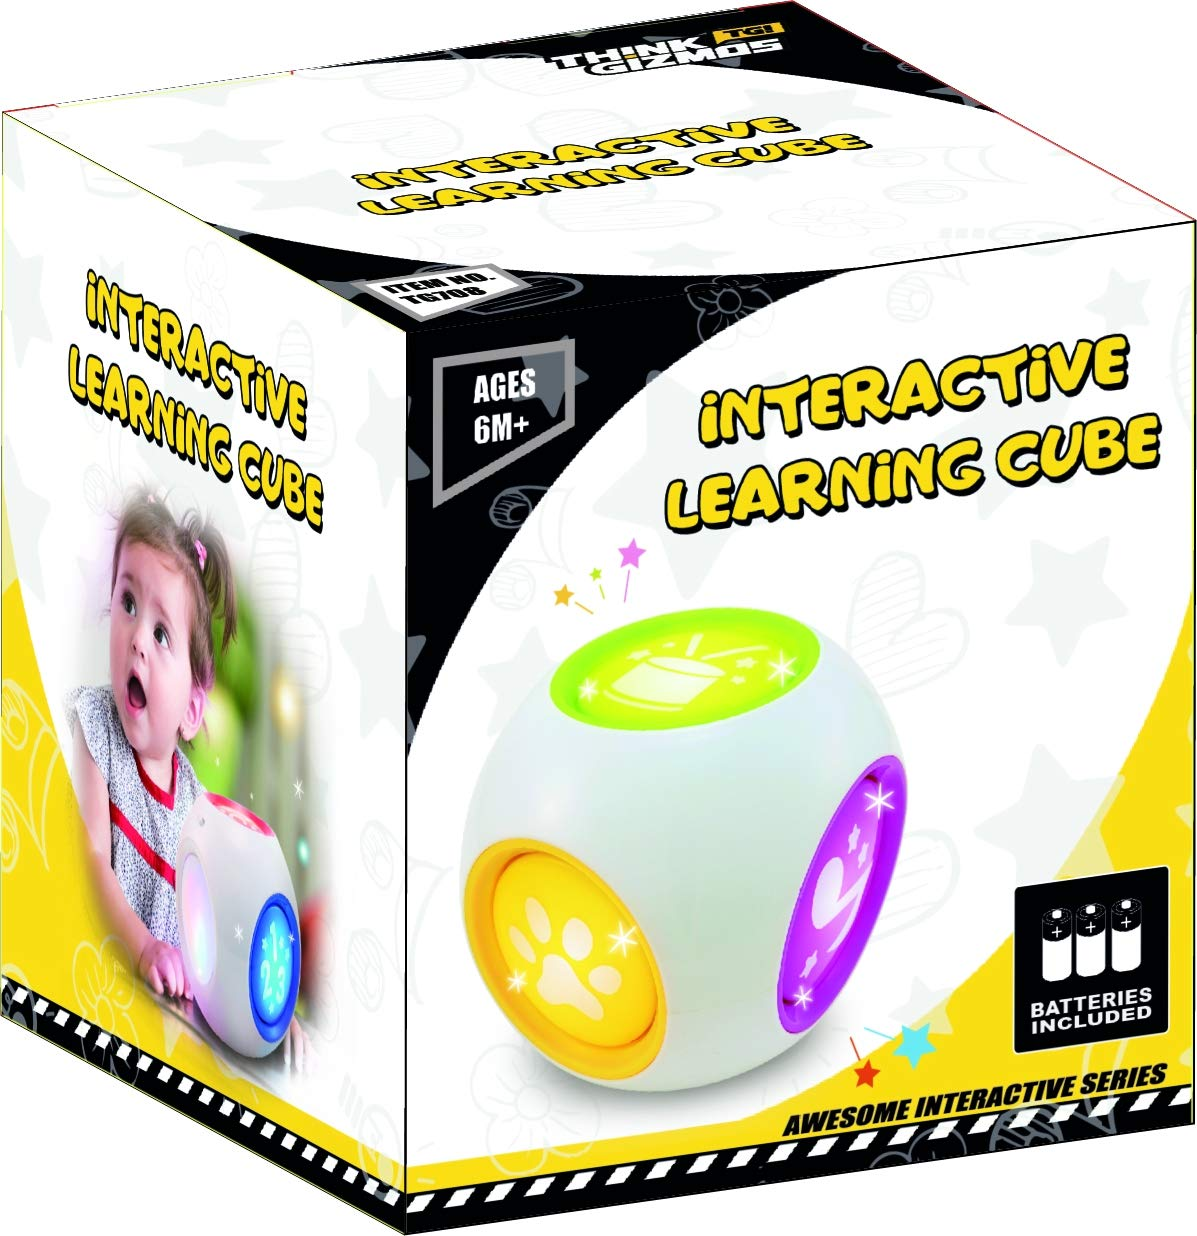 TG708 - Interactive Learning Cube - UK Quality Fun Gadgets ...